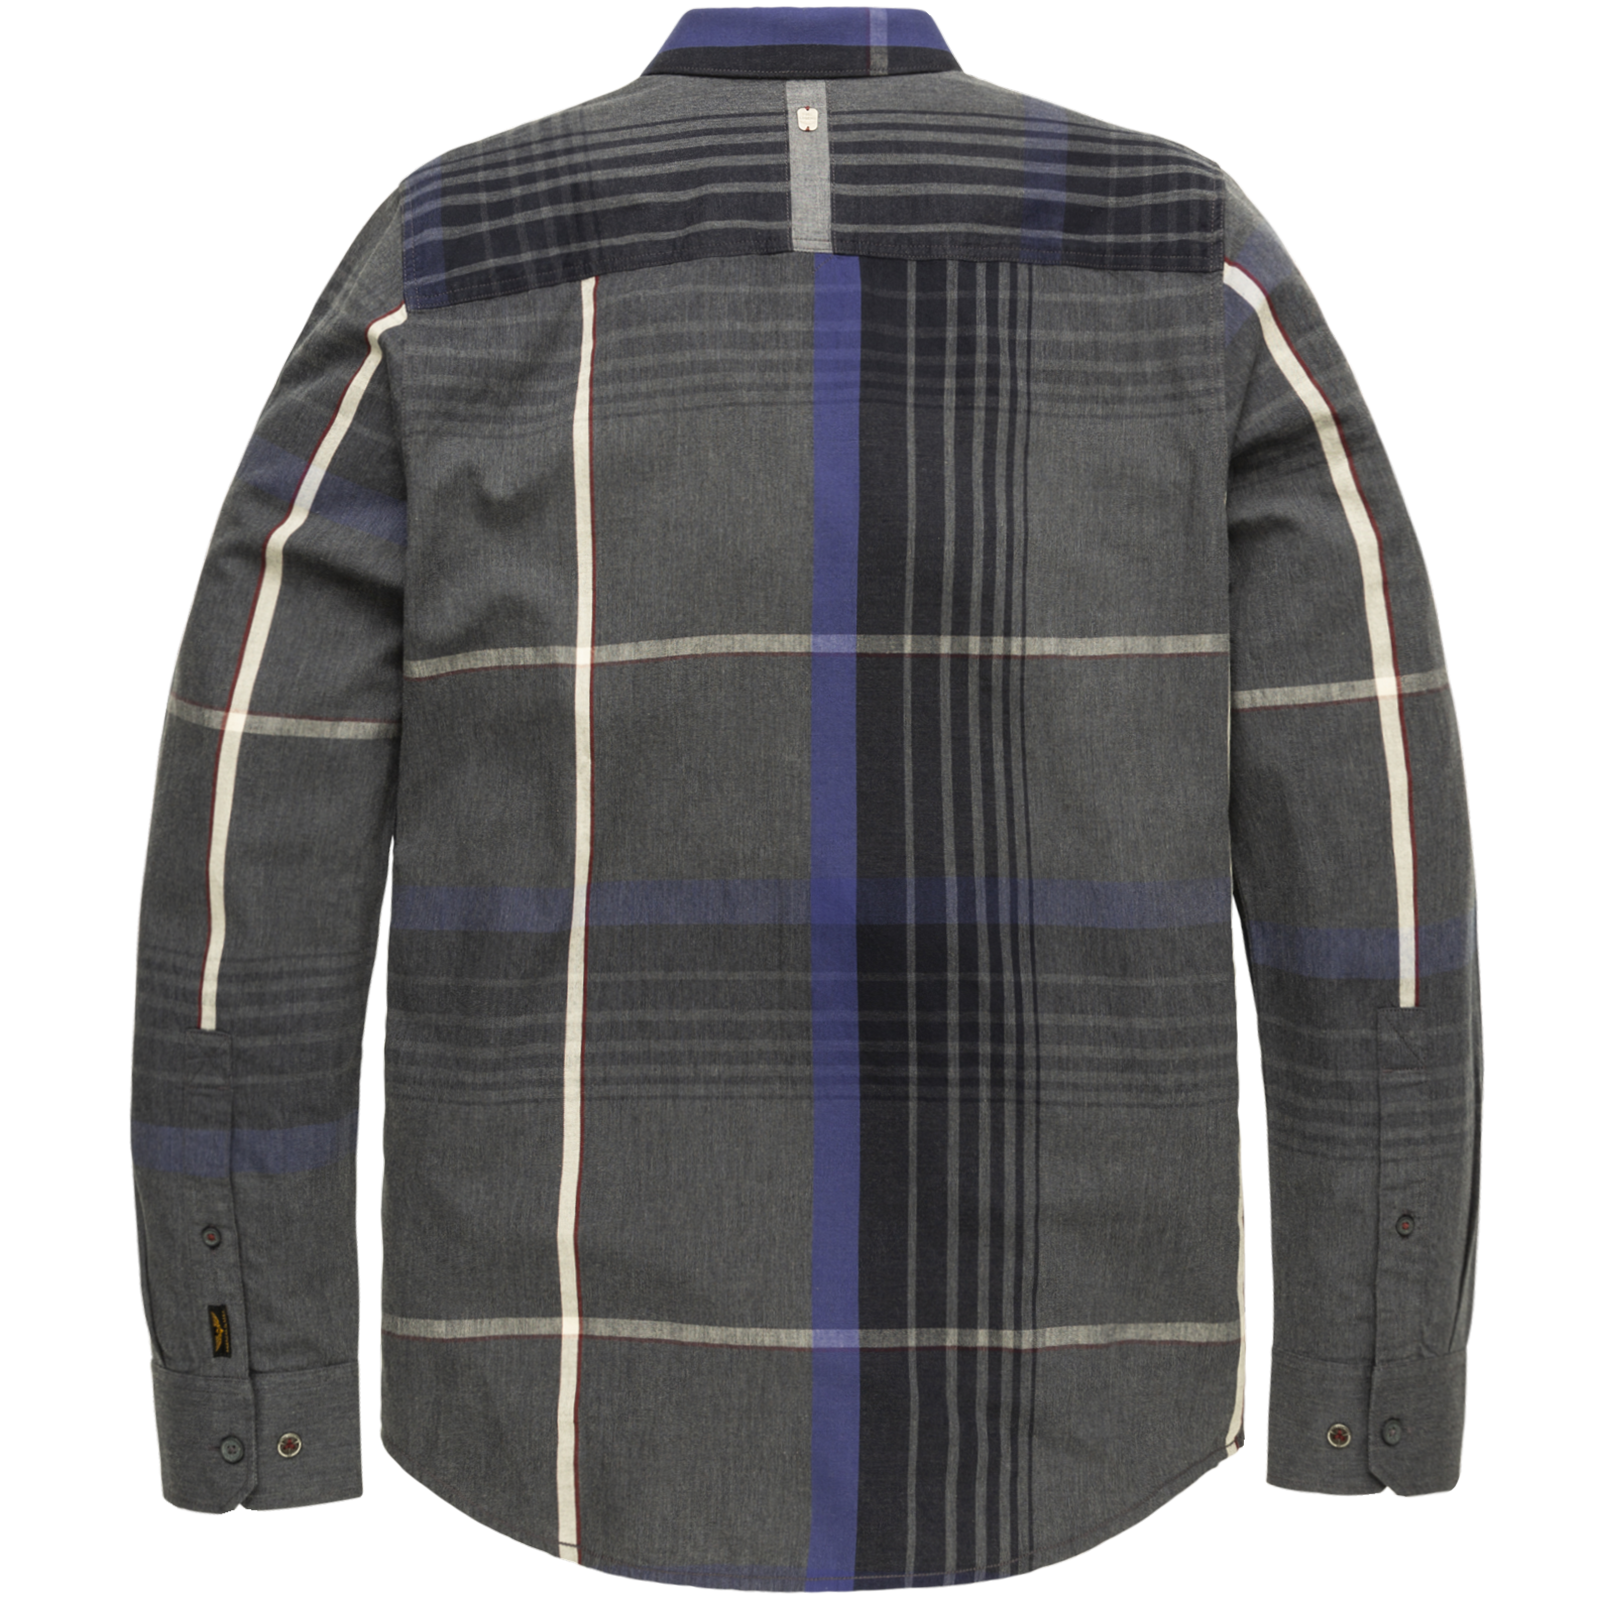 PME Legend PSI206221 5288 PME Legend long sleeve shirt melange check fabric Blue